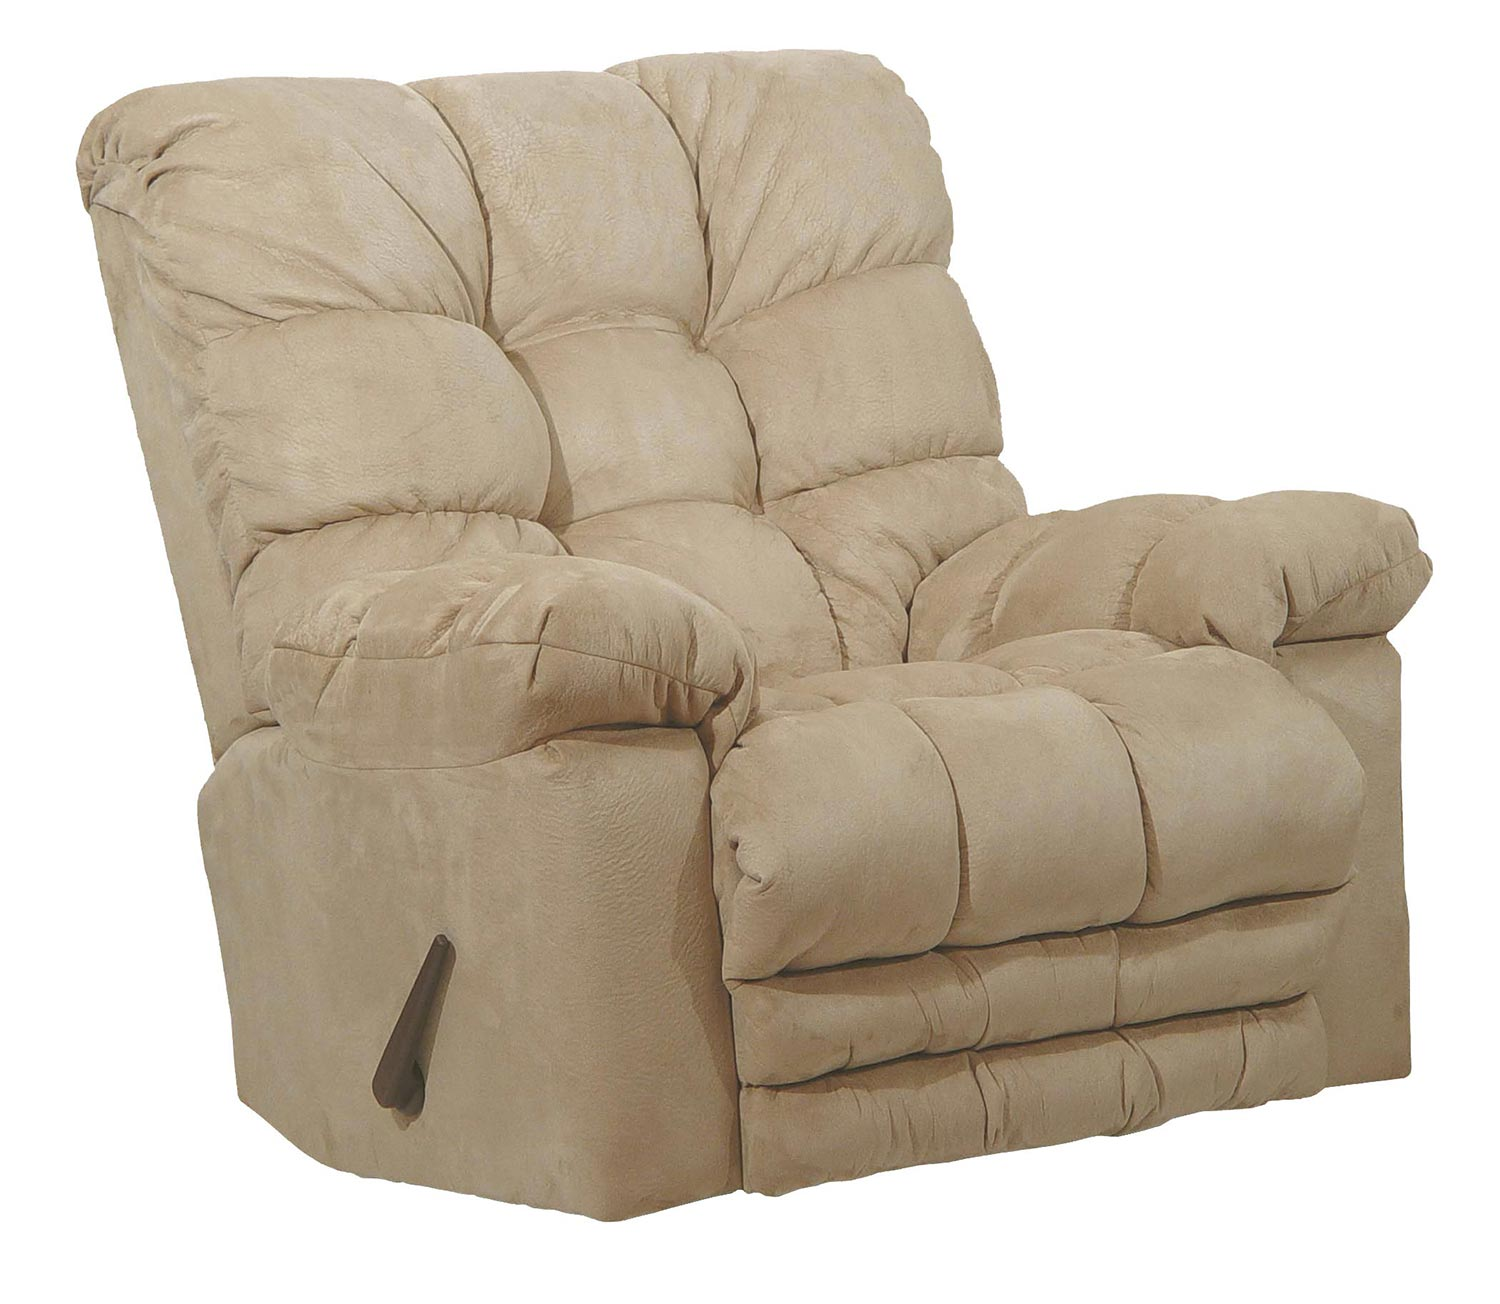 CatNapper Magnum Rocker Recliner Chair - Hazelnut